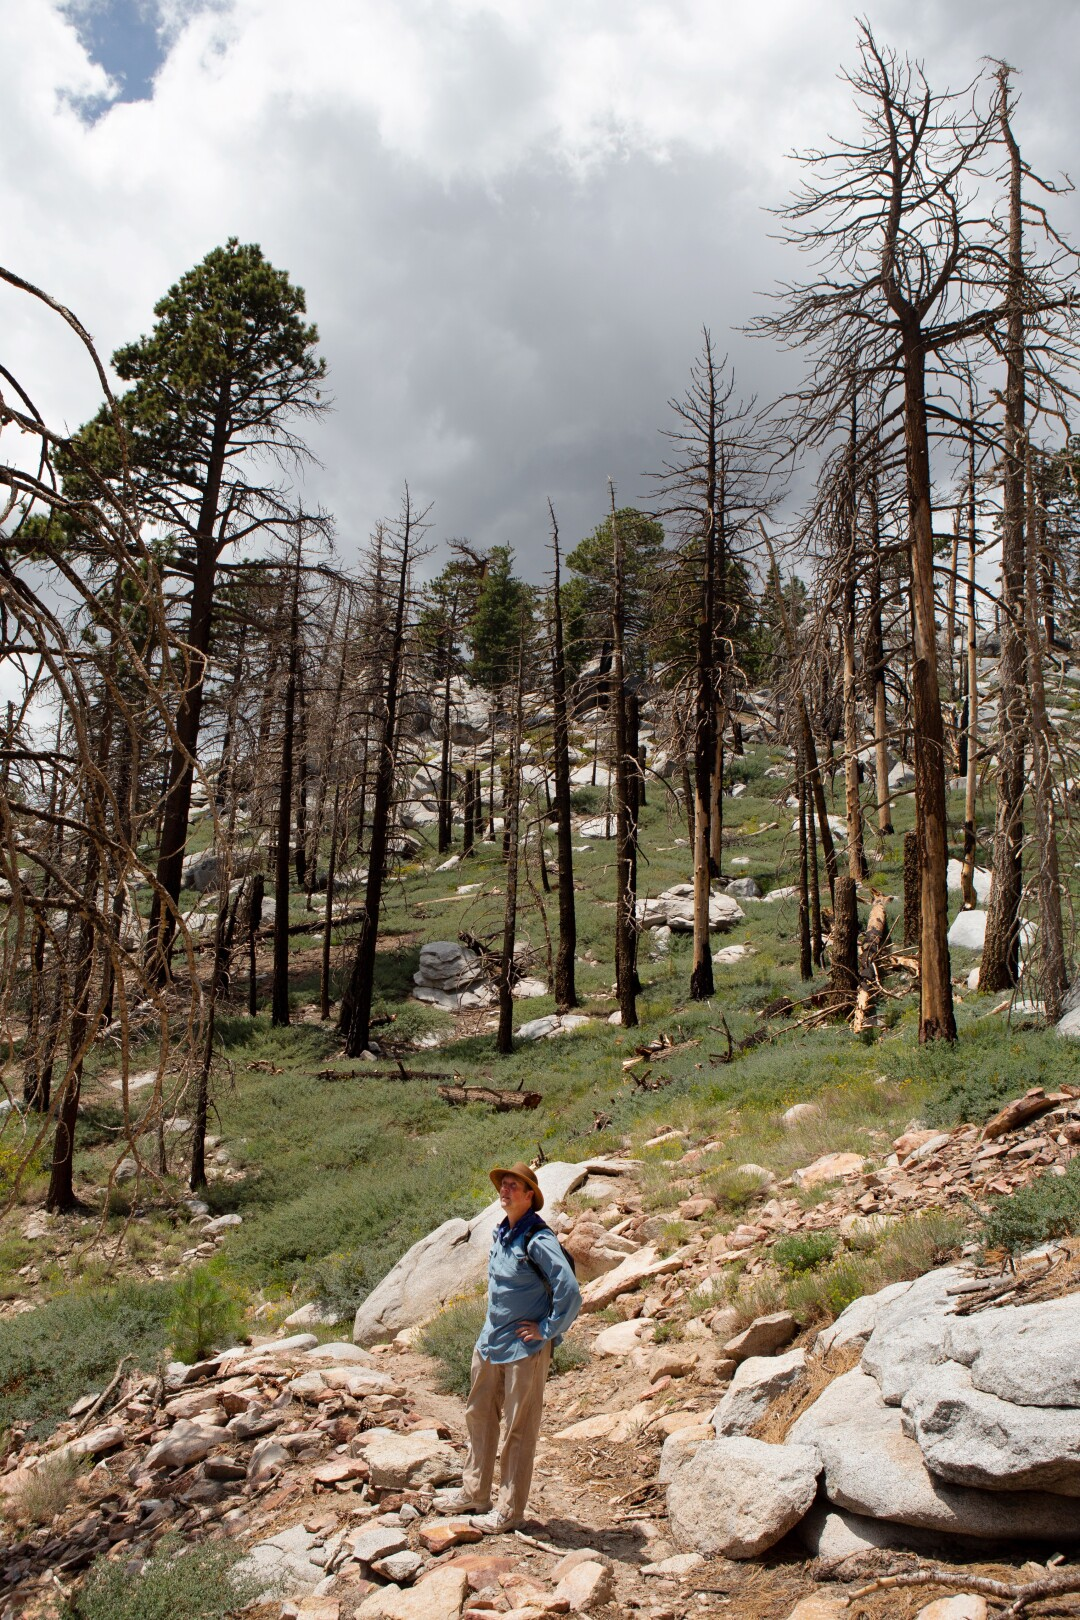 Chad Hanson, ecologist and president of the John Muir Project, examines the burn scar region of the San Jacinto Mountains.